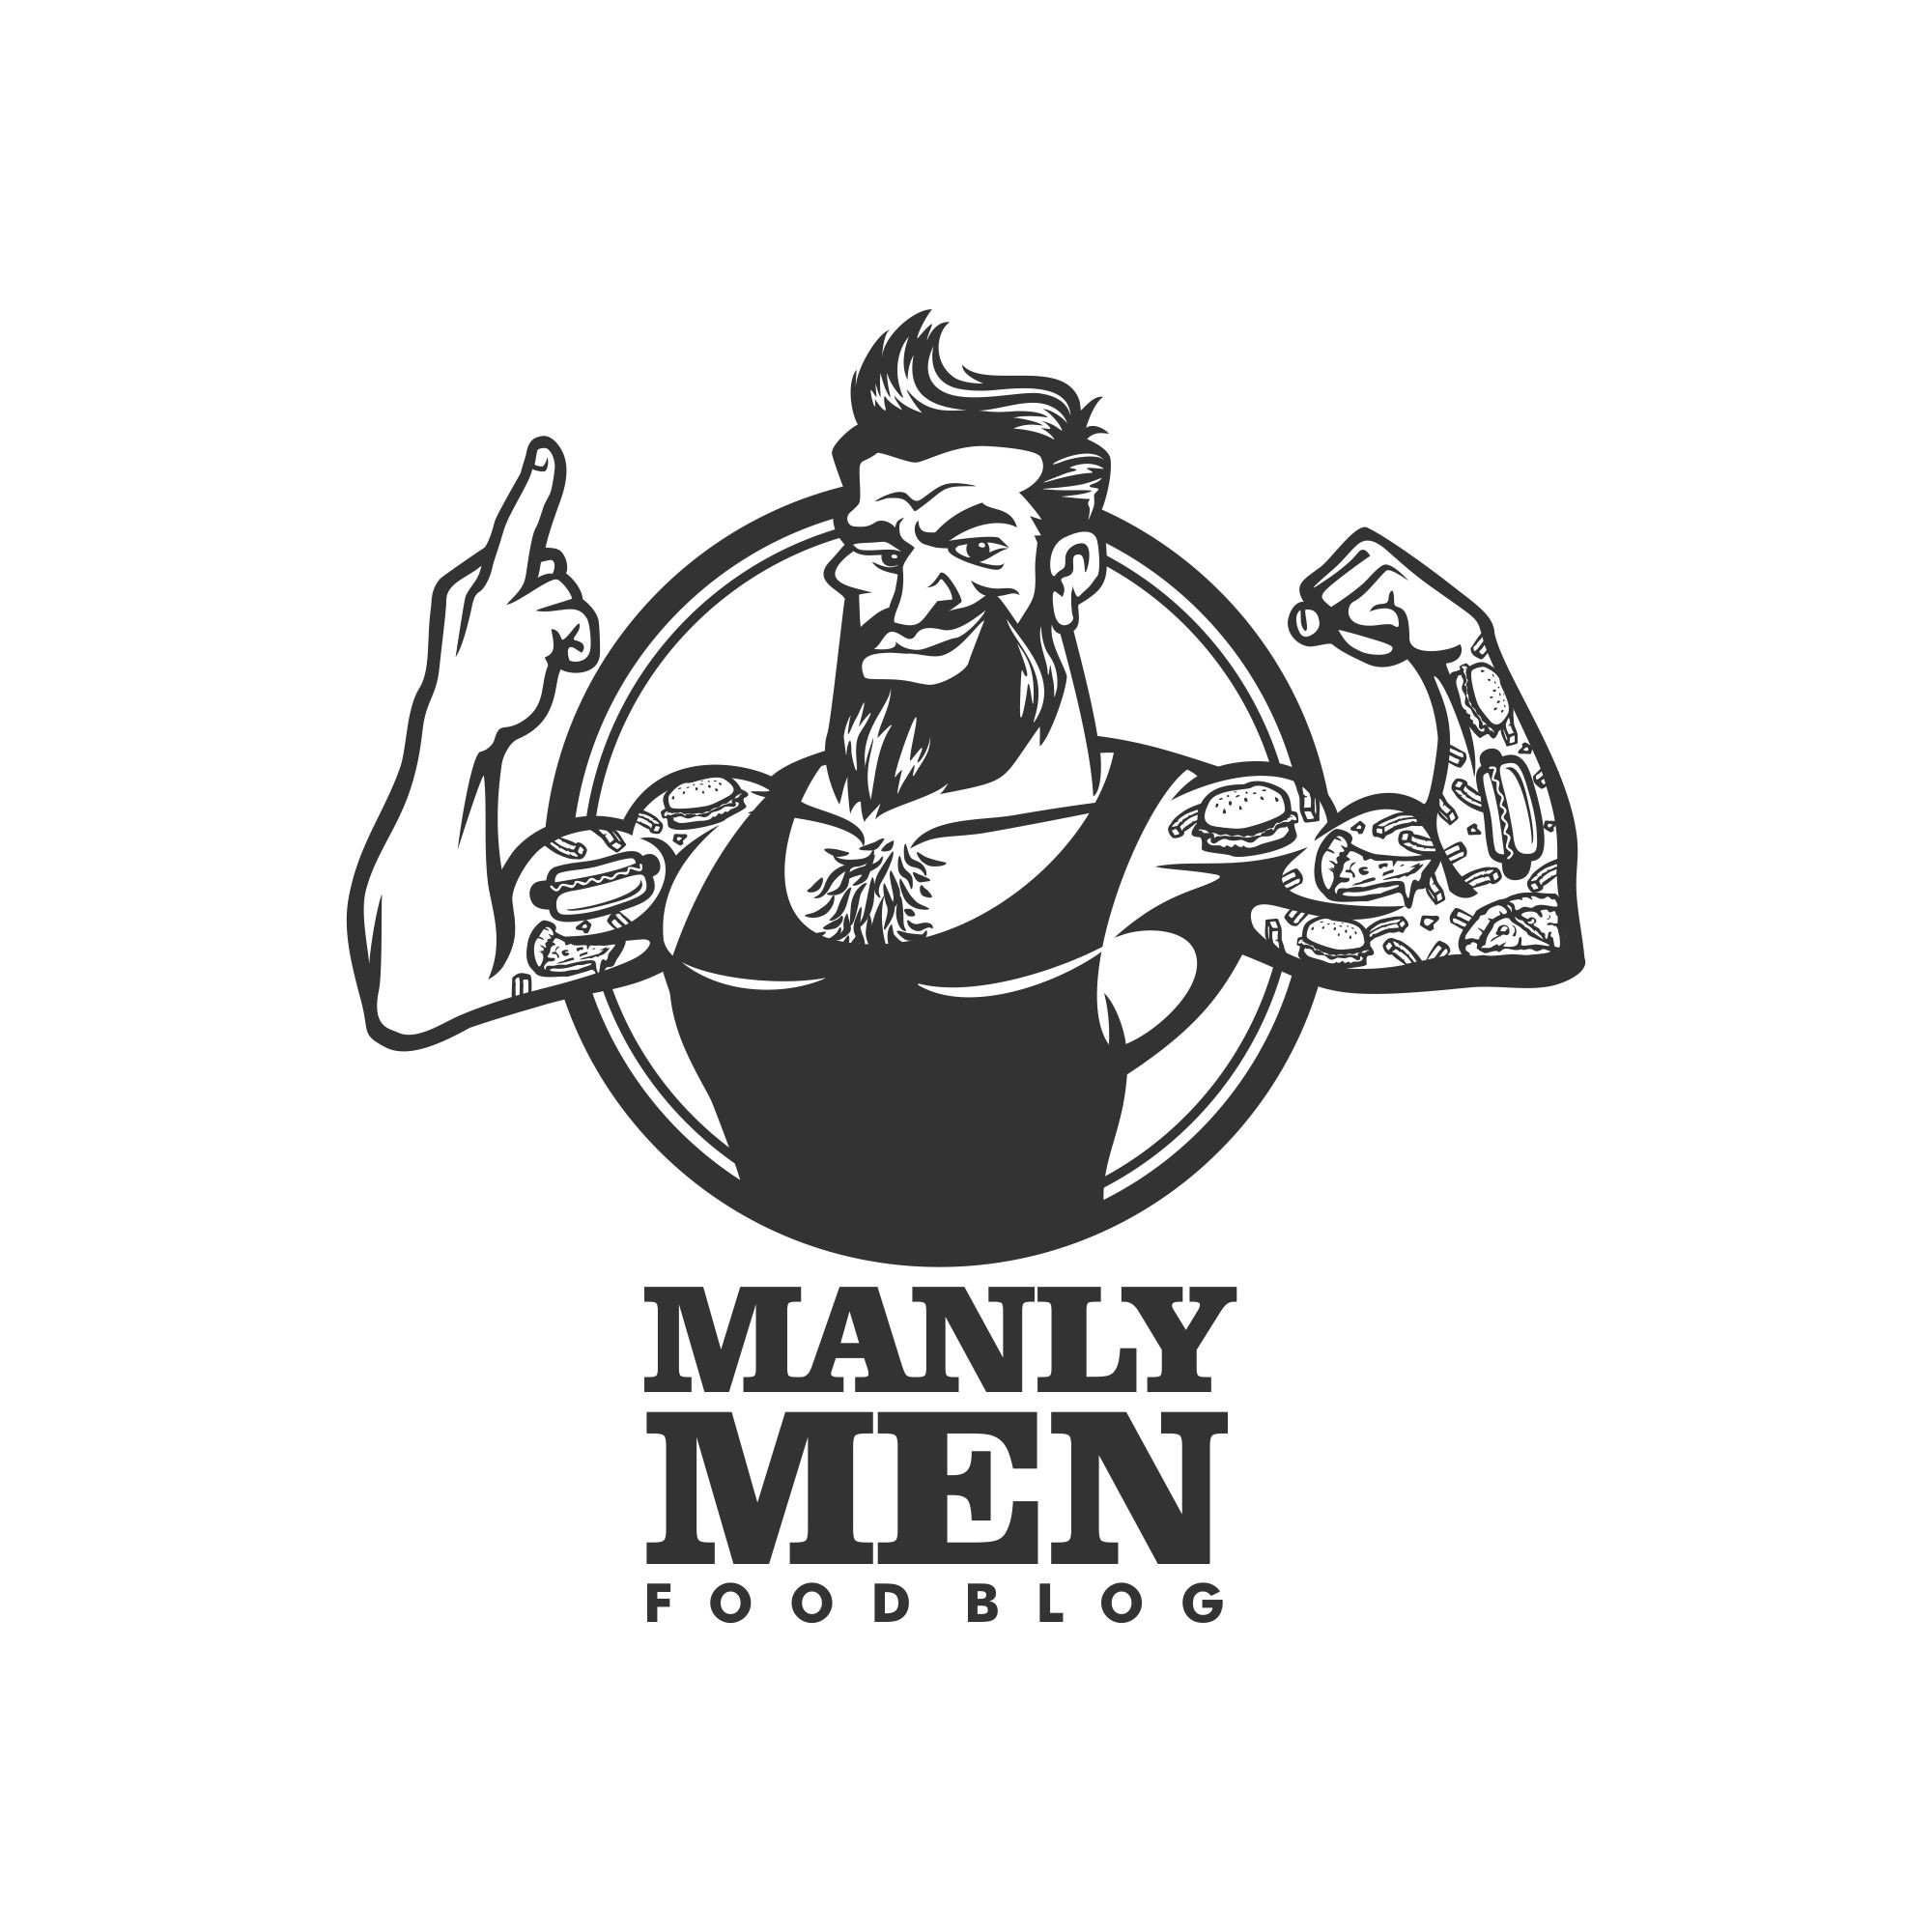 Fed up with all these girlie vegan Blogs? Help Manly Men Food Blog find a new Logo!